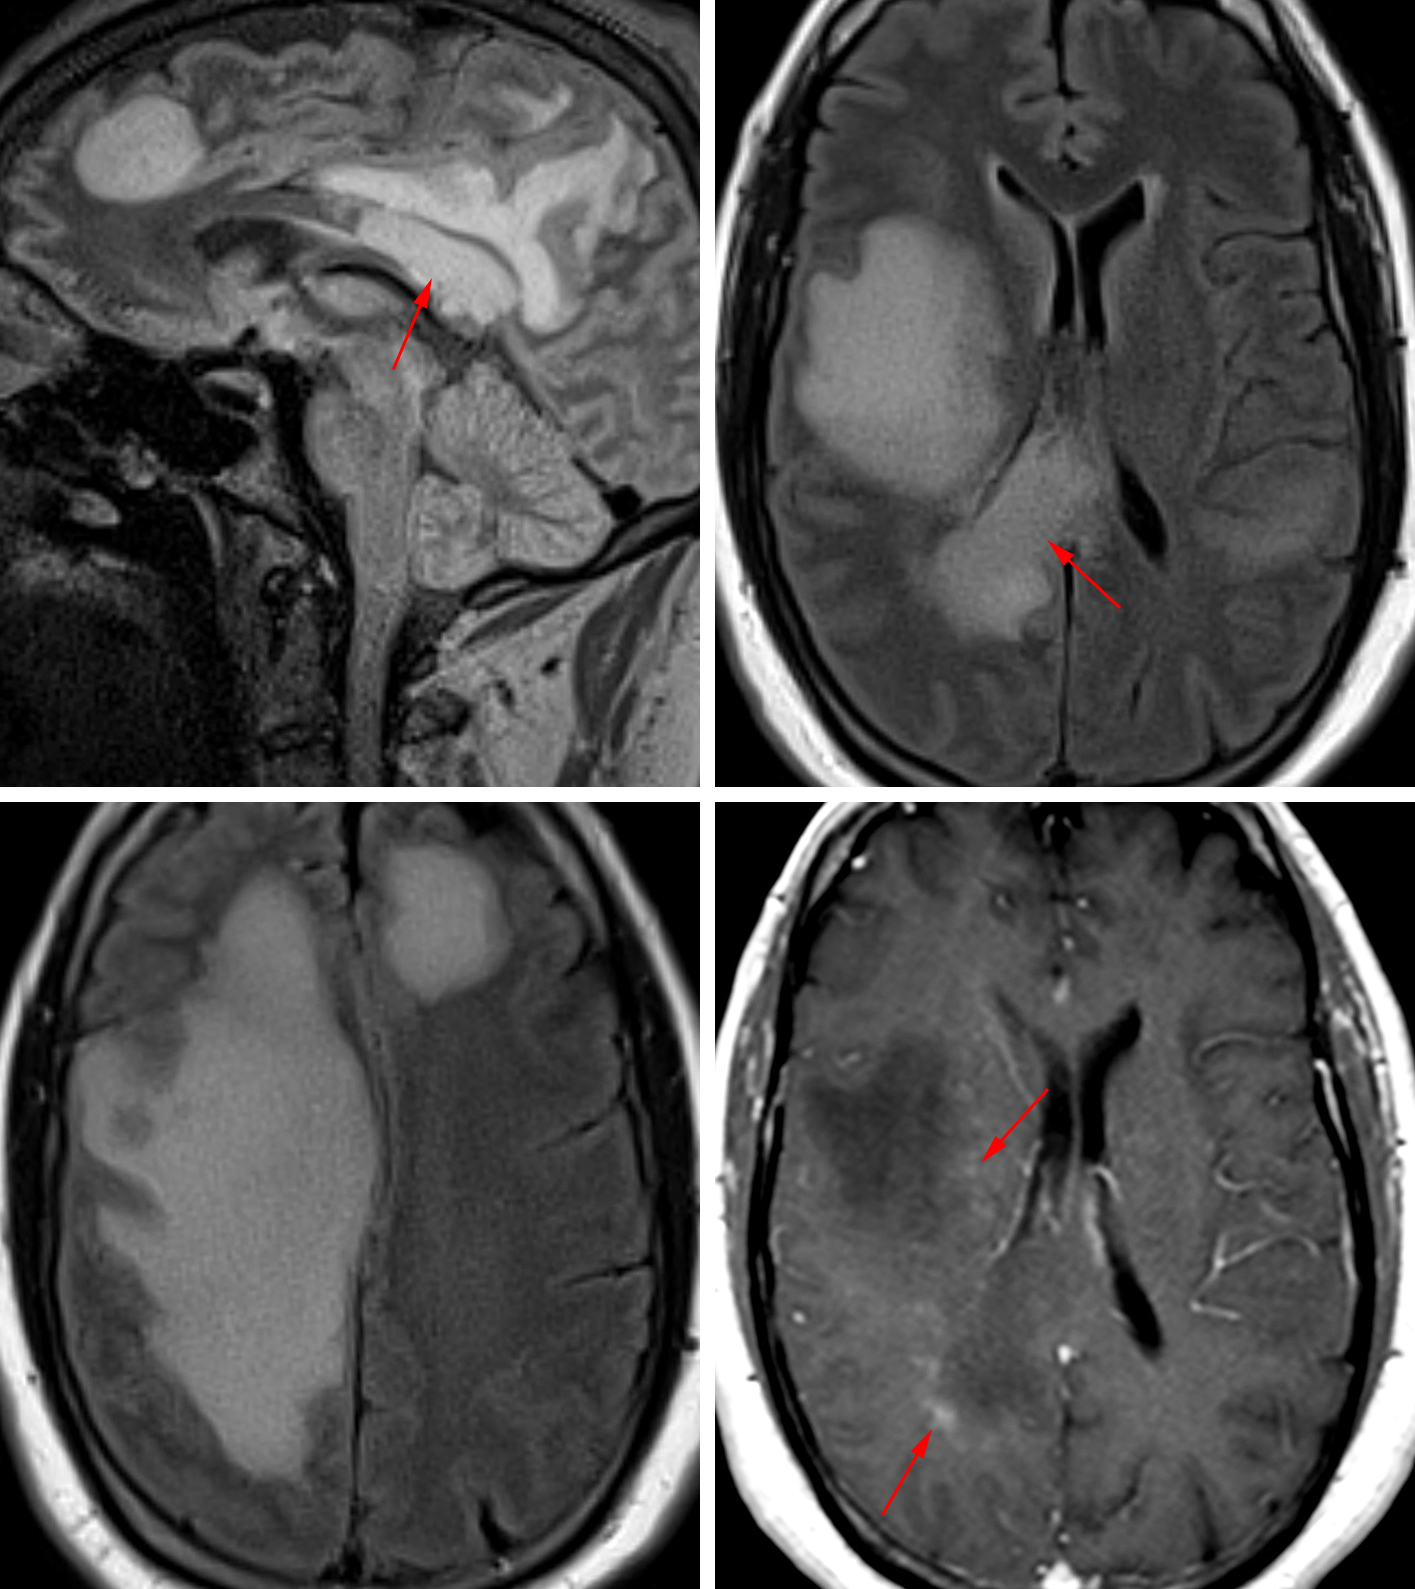 Figure 2: Tumefactive demyelinating lesions are often large and mass-like, demonstrating FLAIR hyperintensity throughout the lesion (top row left – sagittal, top row right, bottom row left - axial). These lesions commonly involve the corpus callosum (top row left, top row right - arrow) and are often confused for lymphoma or glioblastoma. As is common for lesions of demyelination, there is vague incomplete peripheral enhancement on post-contrast imaging (bottom row right).